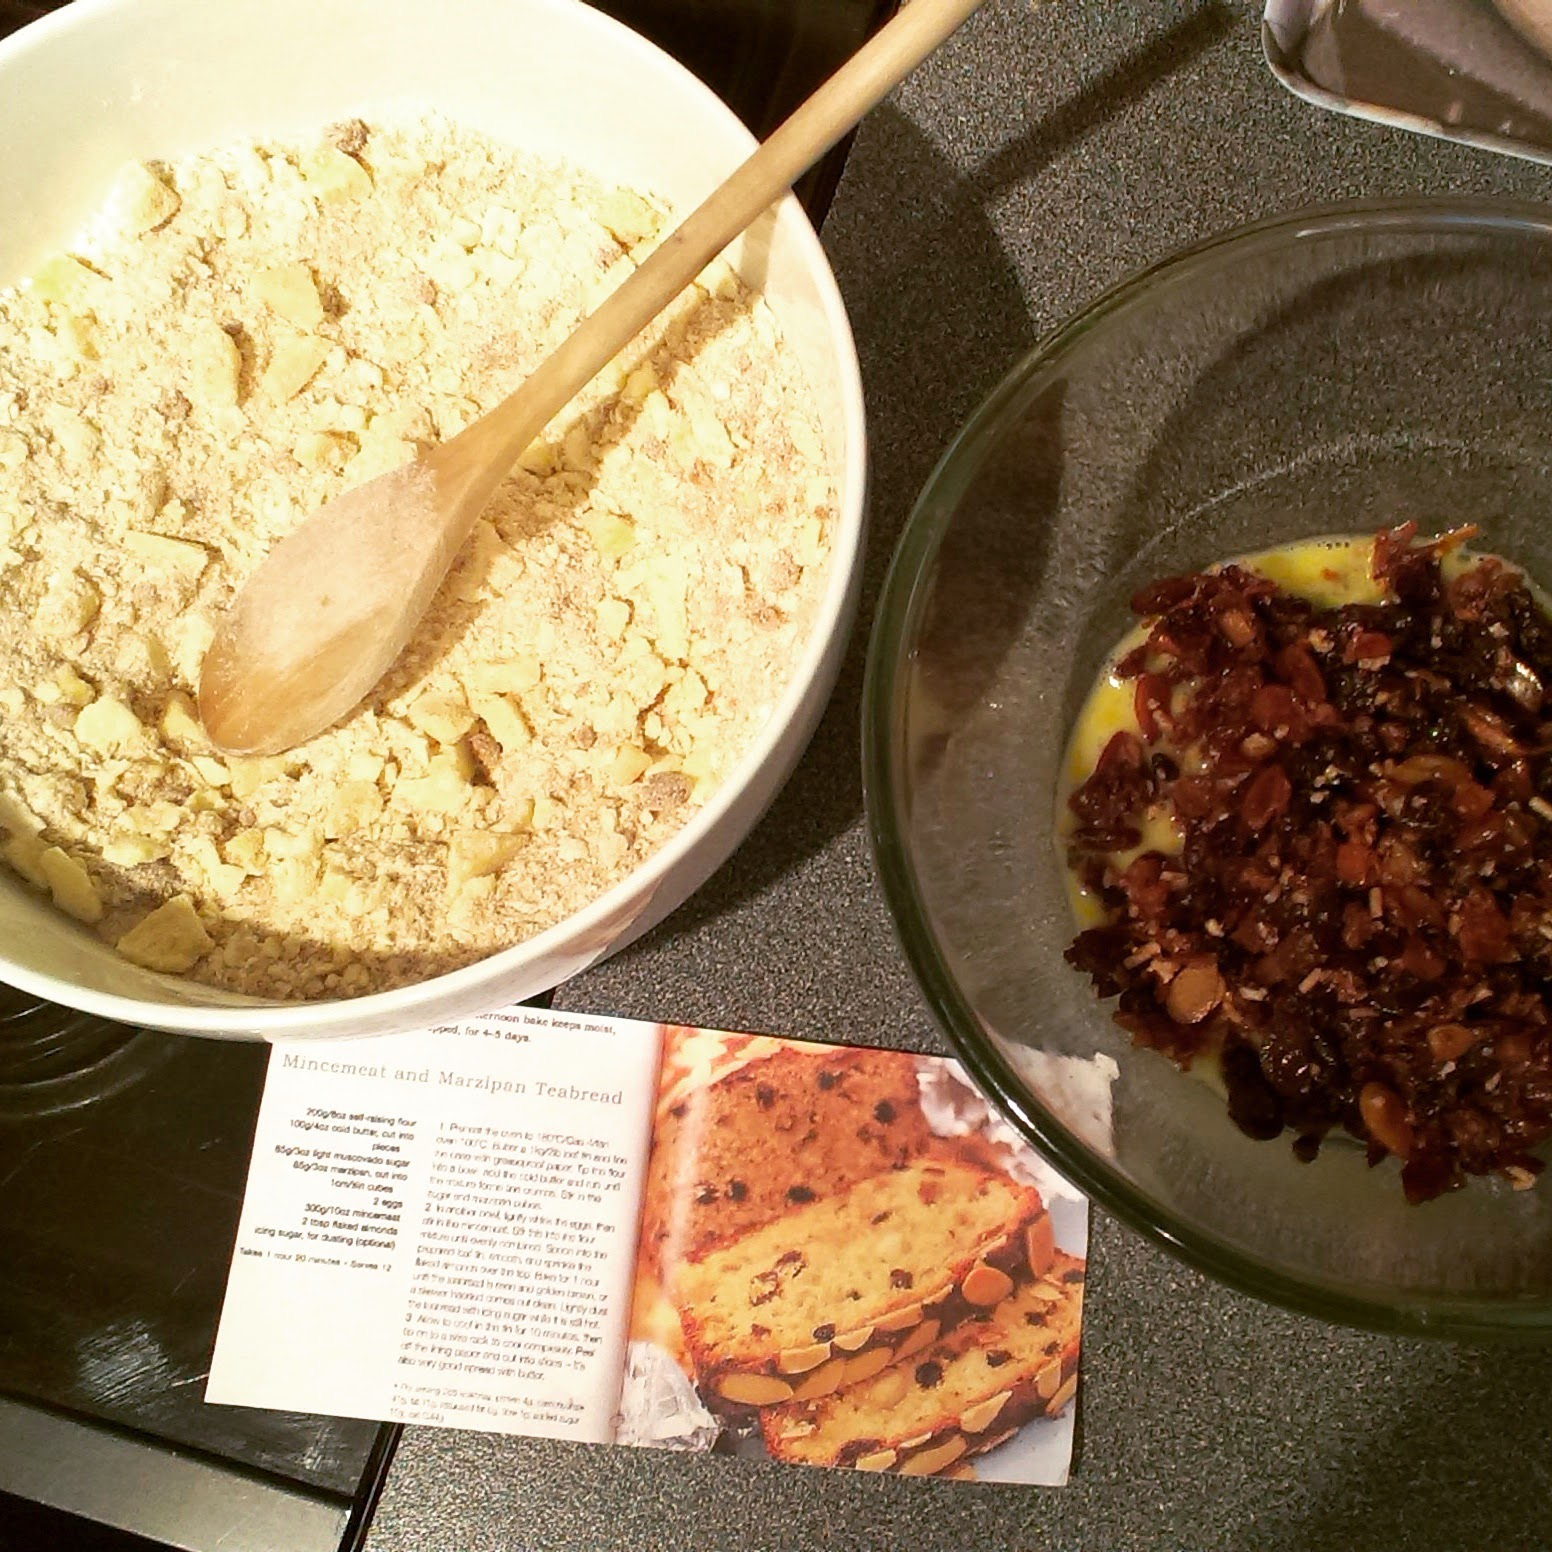 5pm - making Mincemeat and Marzipan Teabread